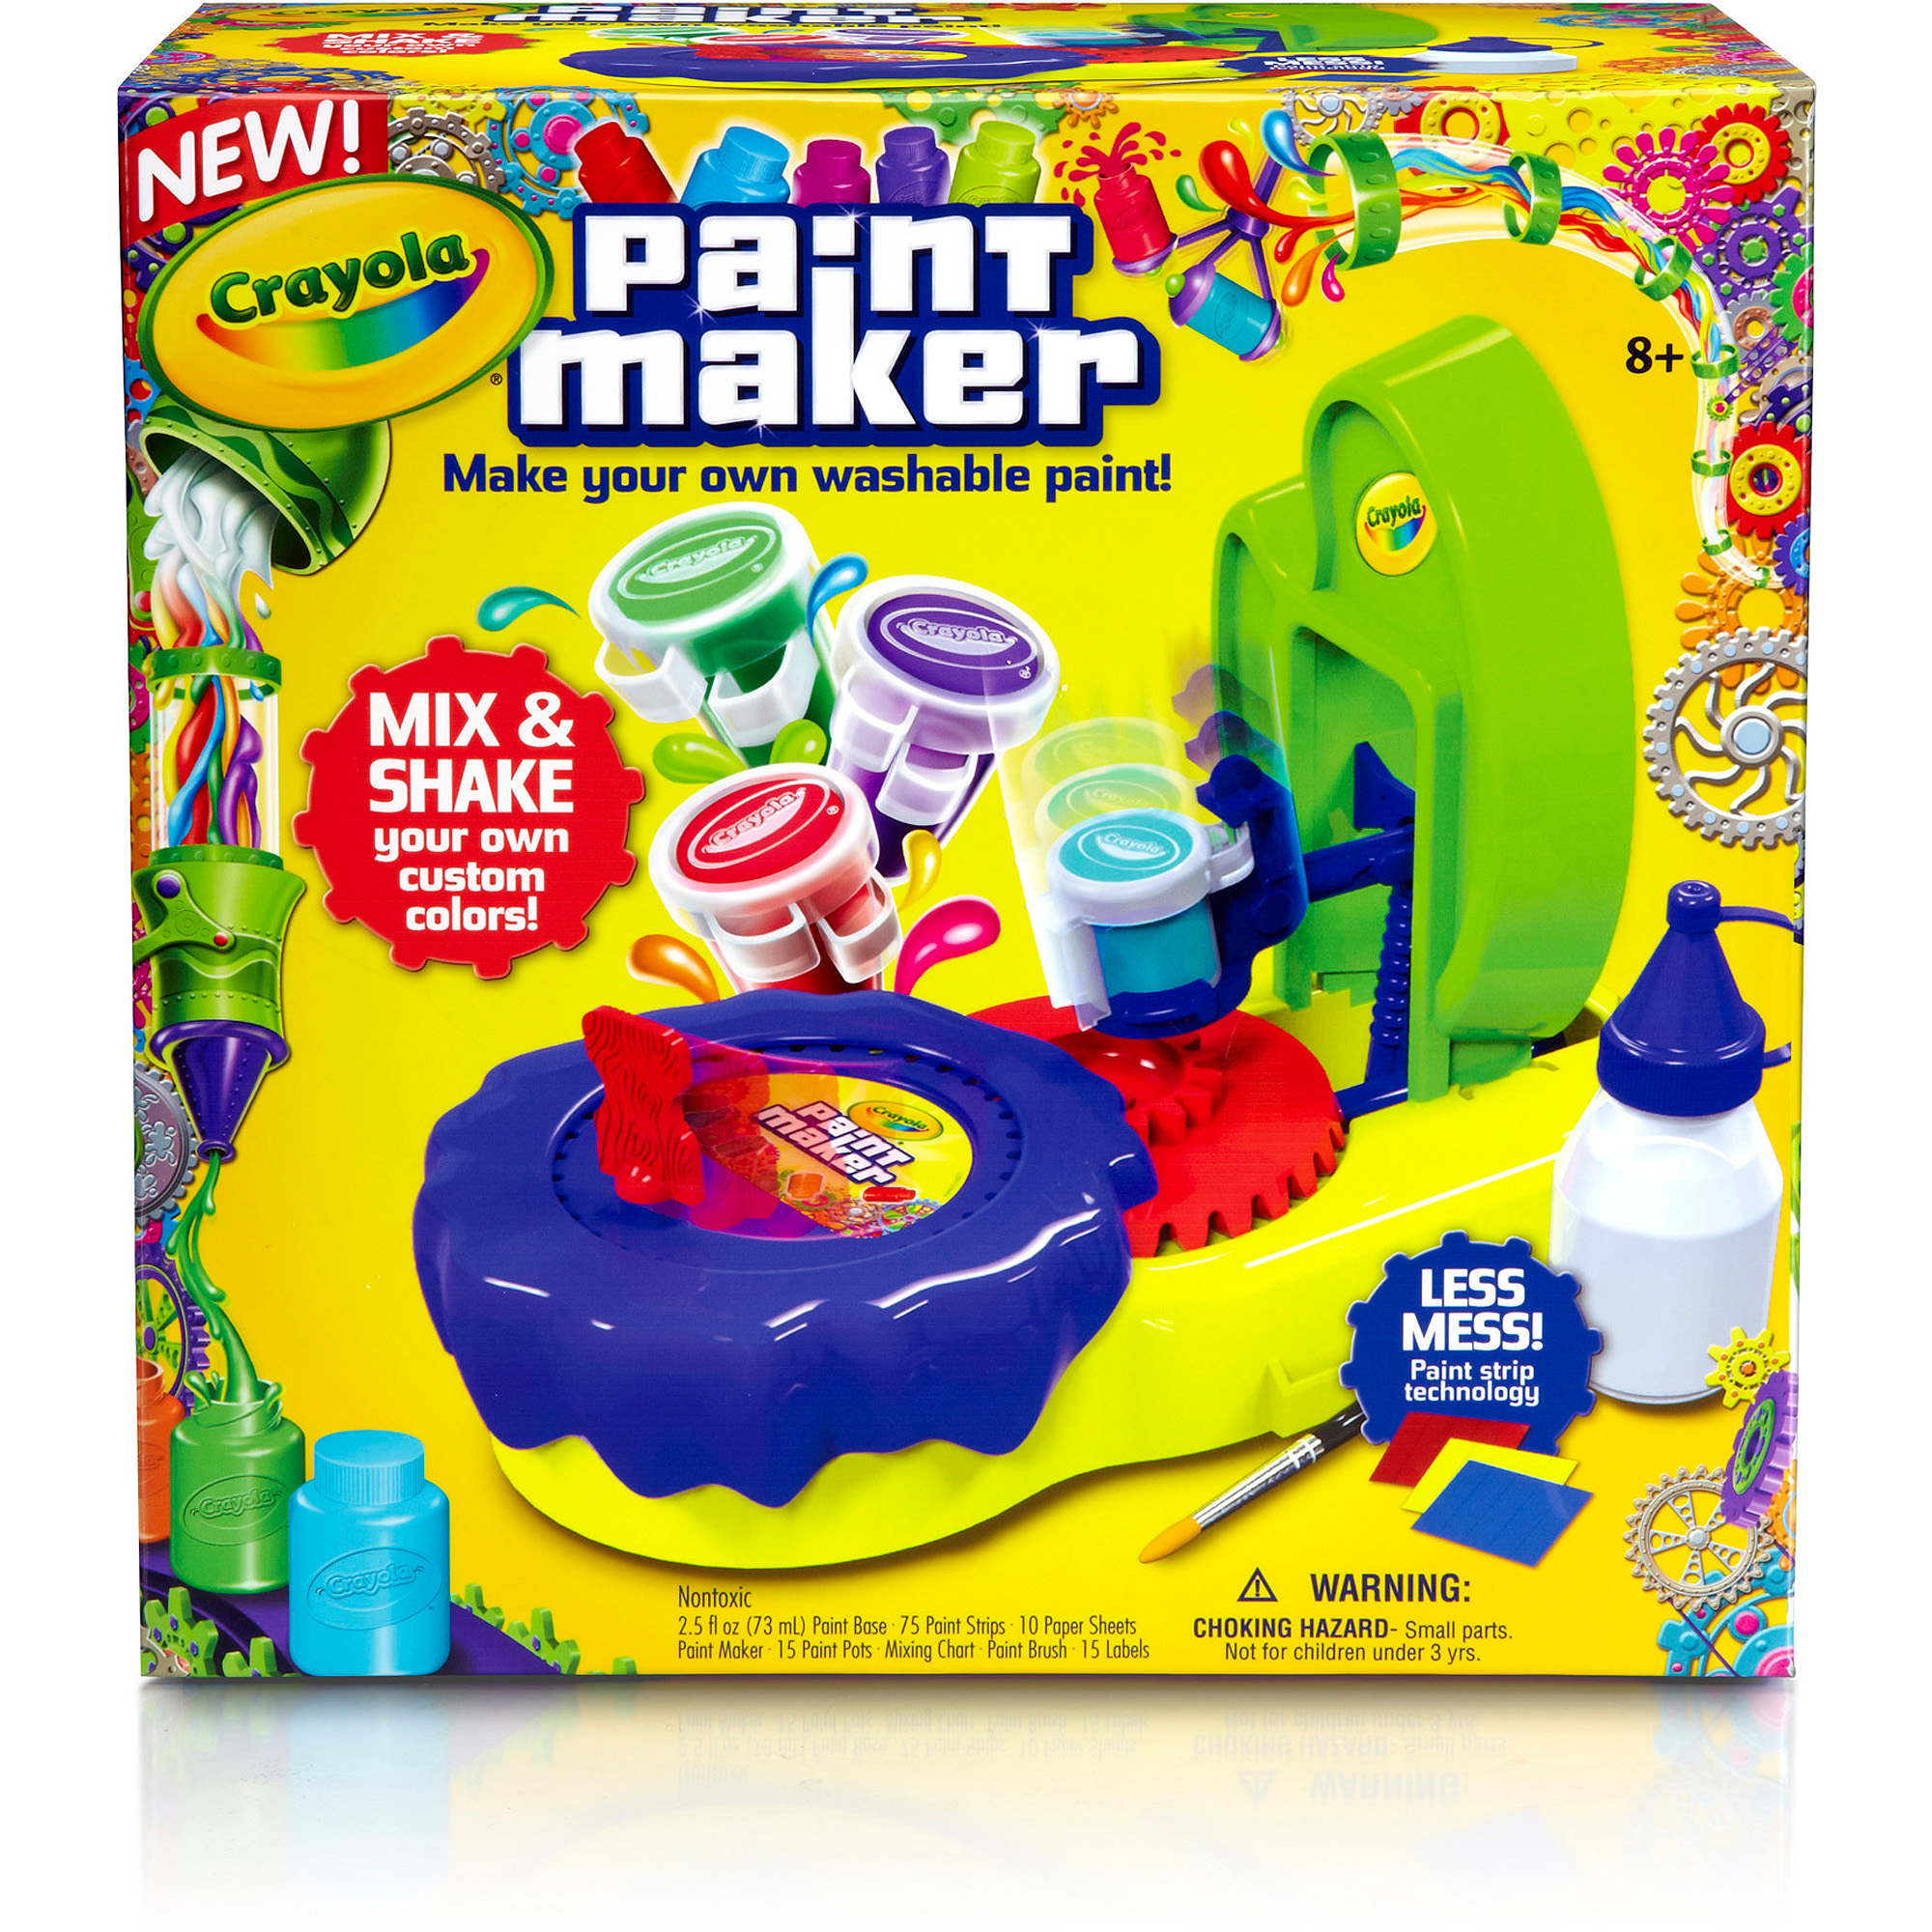 Crayola Paint Maker, Kids Creativity Paint Kit